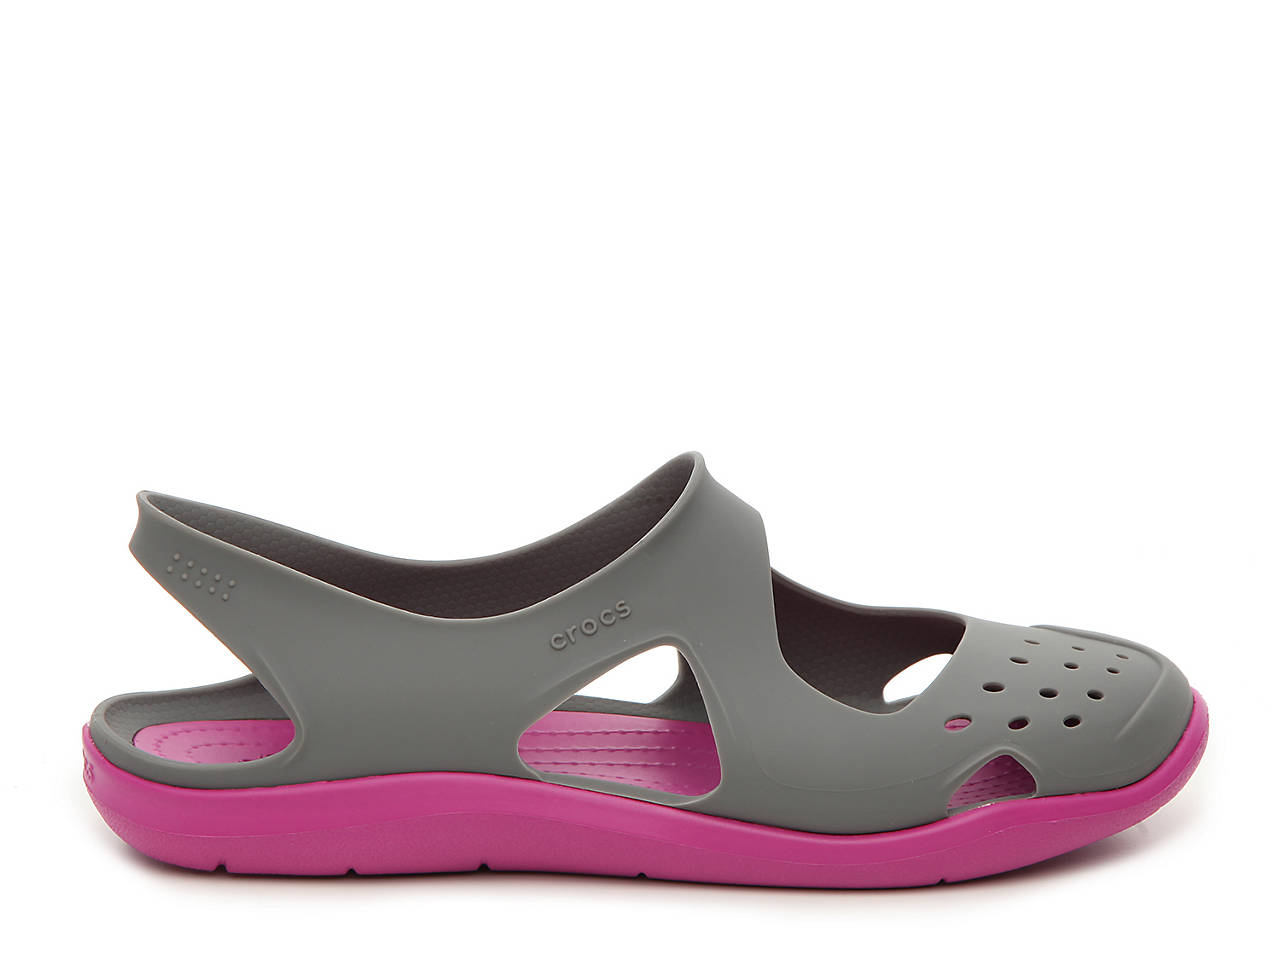 c8fb57e6 Crocs Swiftwater Wave Sandal Women's Shoes | DSW